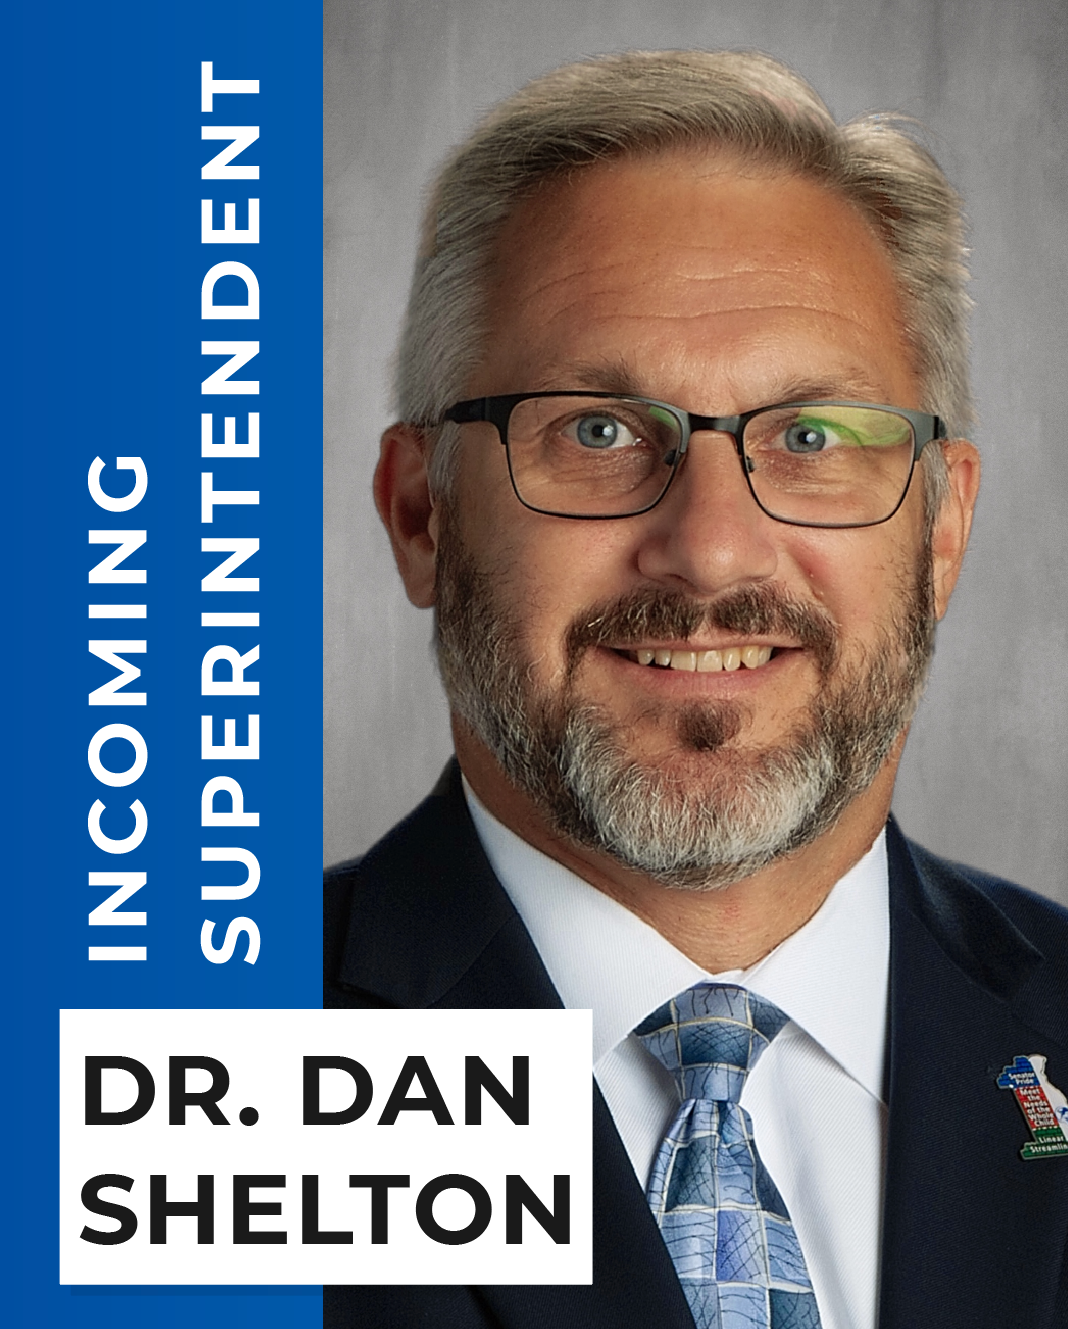 Christina School District - Incoming superintendent - Dan Shelton